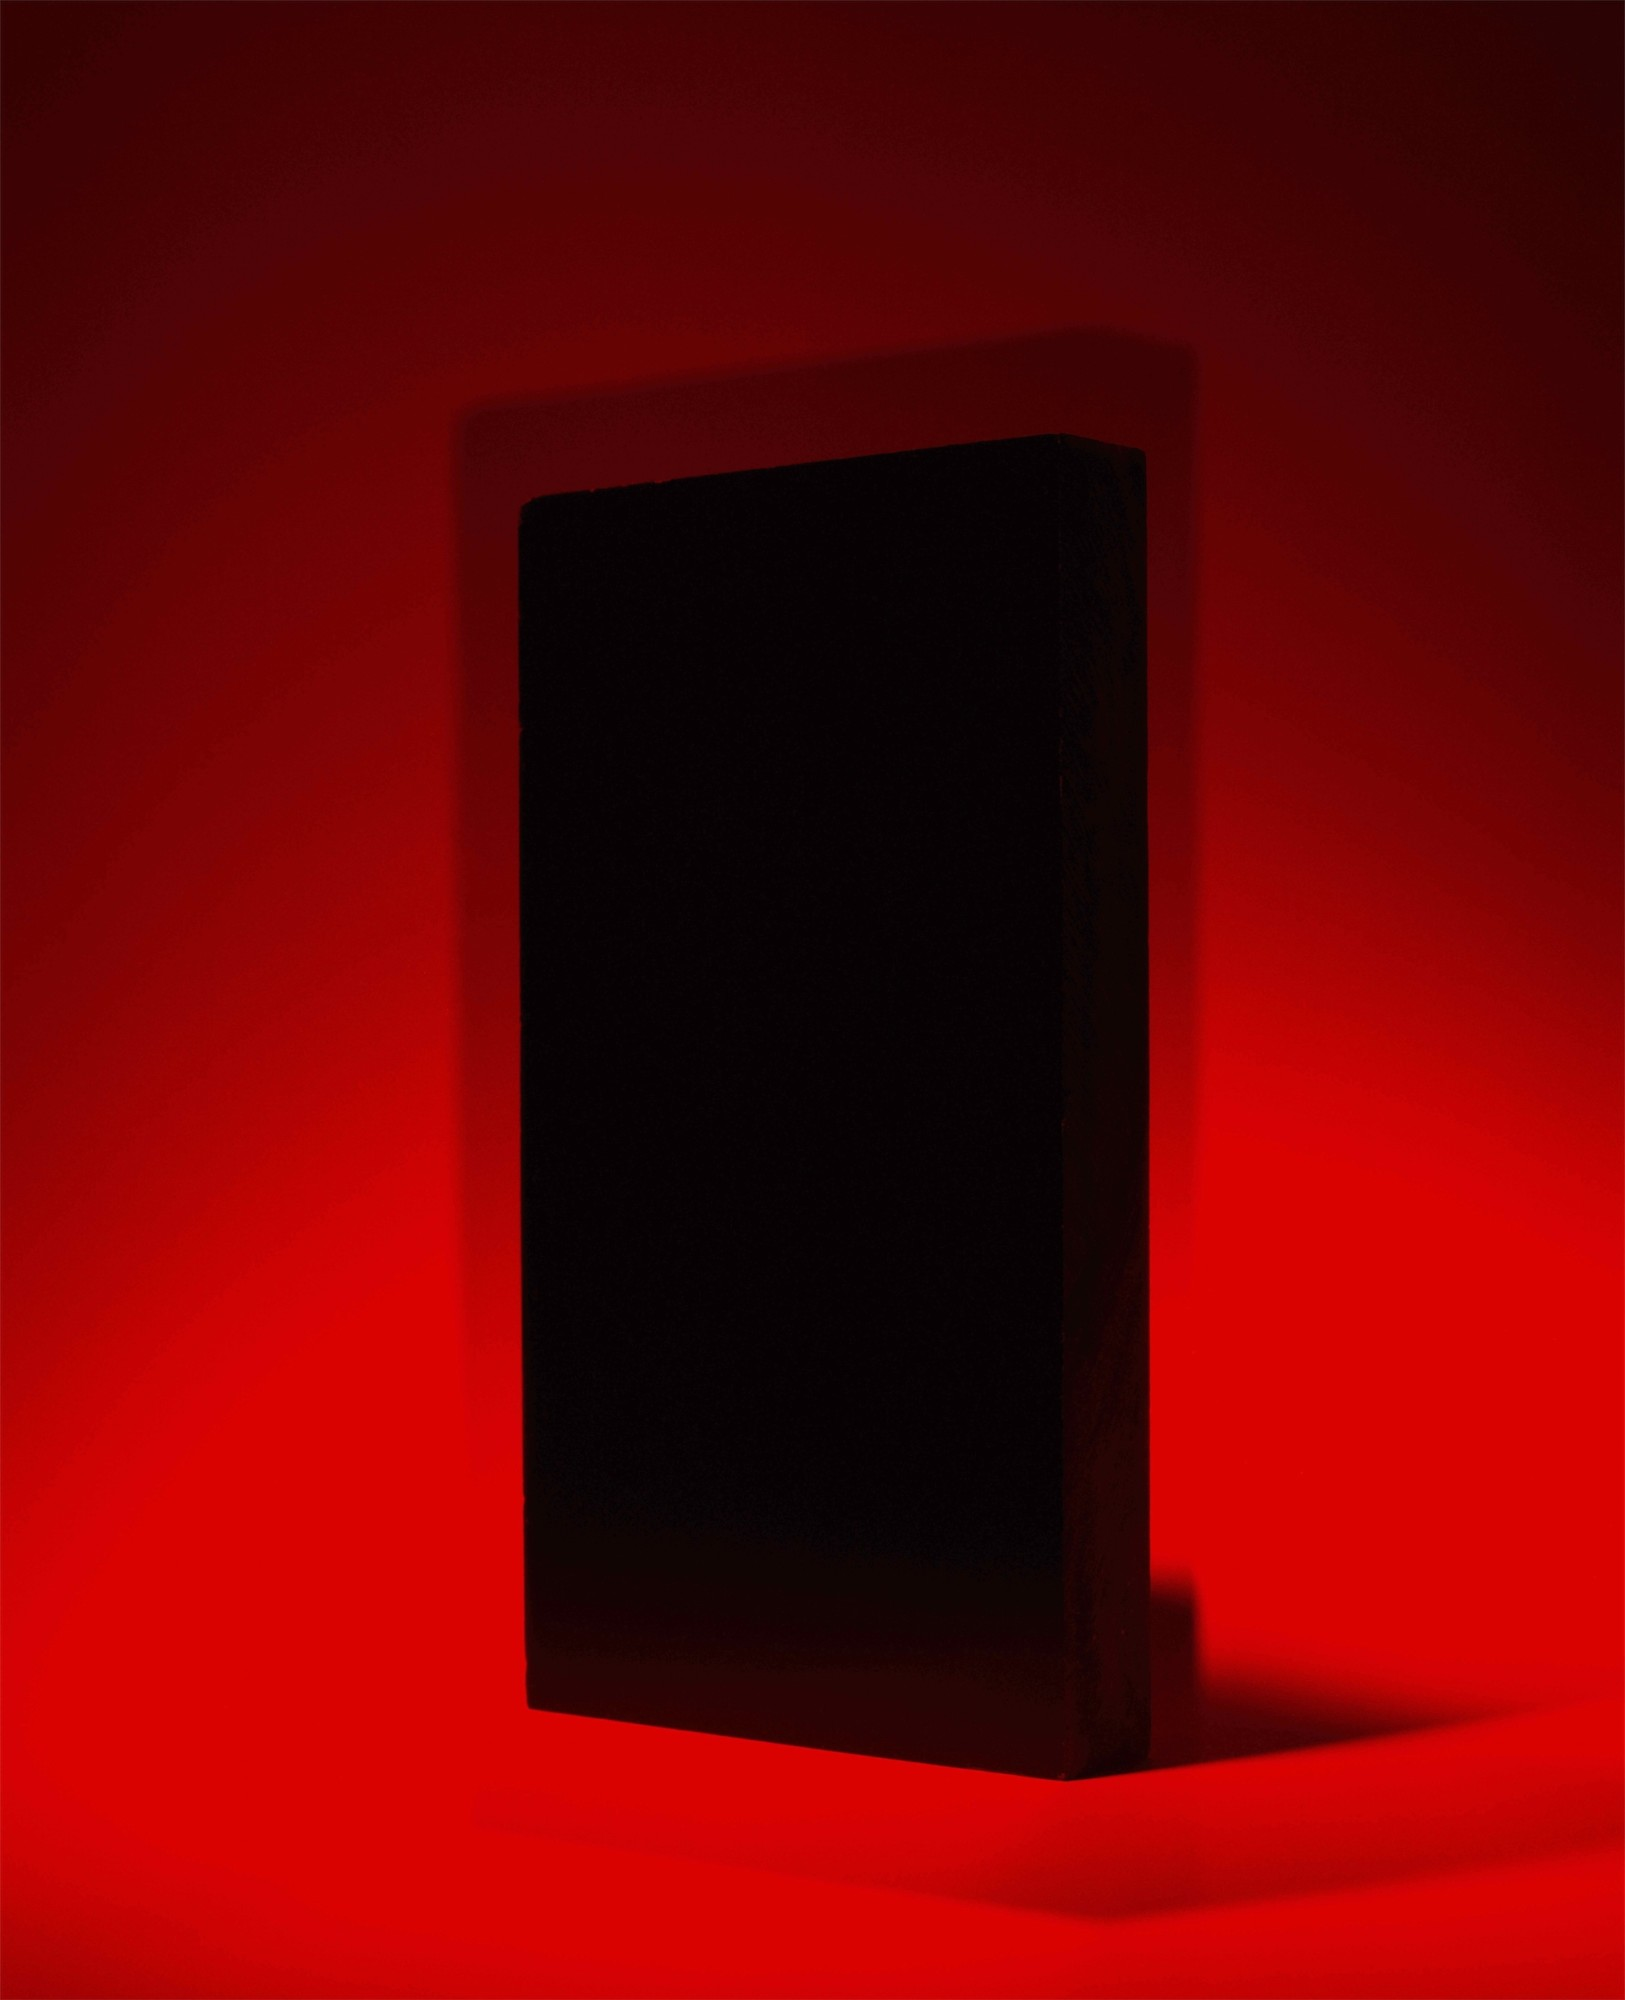 DEEP RED (MONOLITH) by DILLON DEWATERS